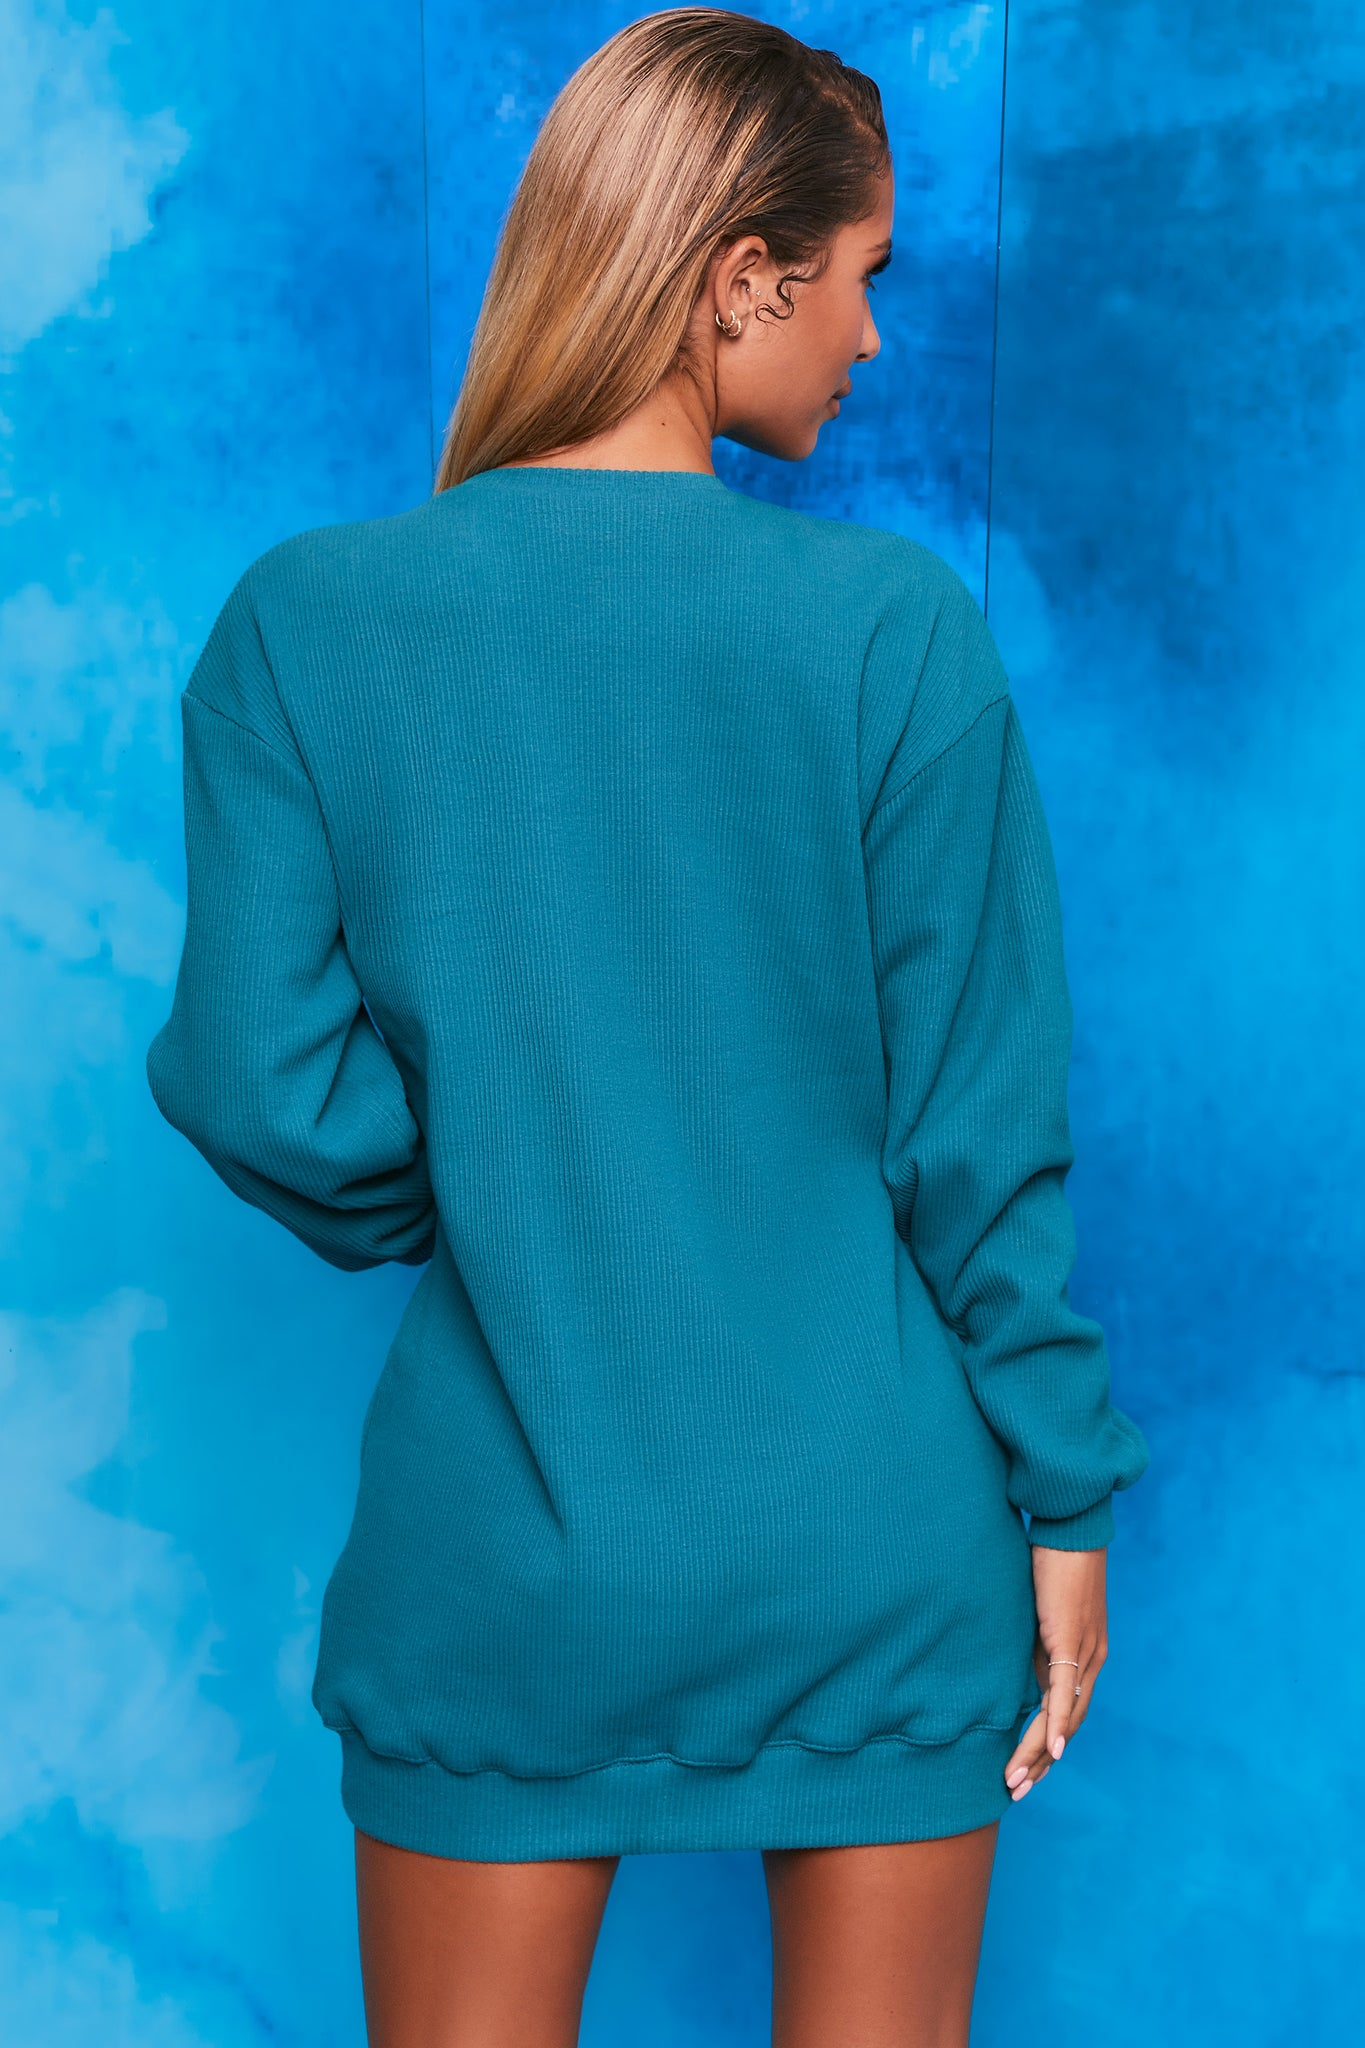 Plain teal ribbed oversized sweatshirt with long sleeves. Image 3 of 6.